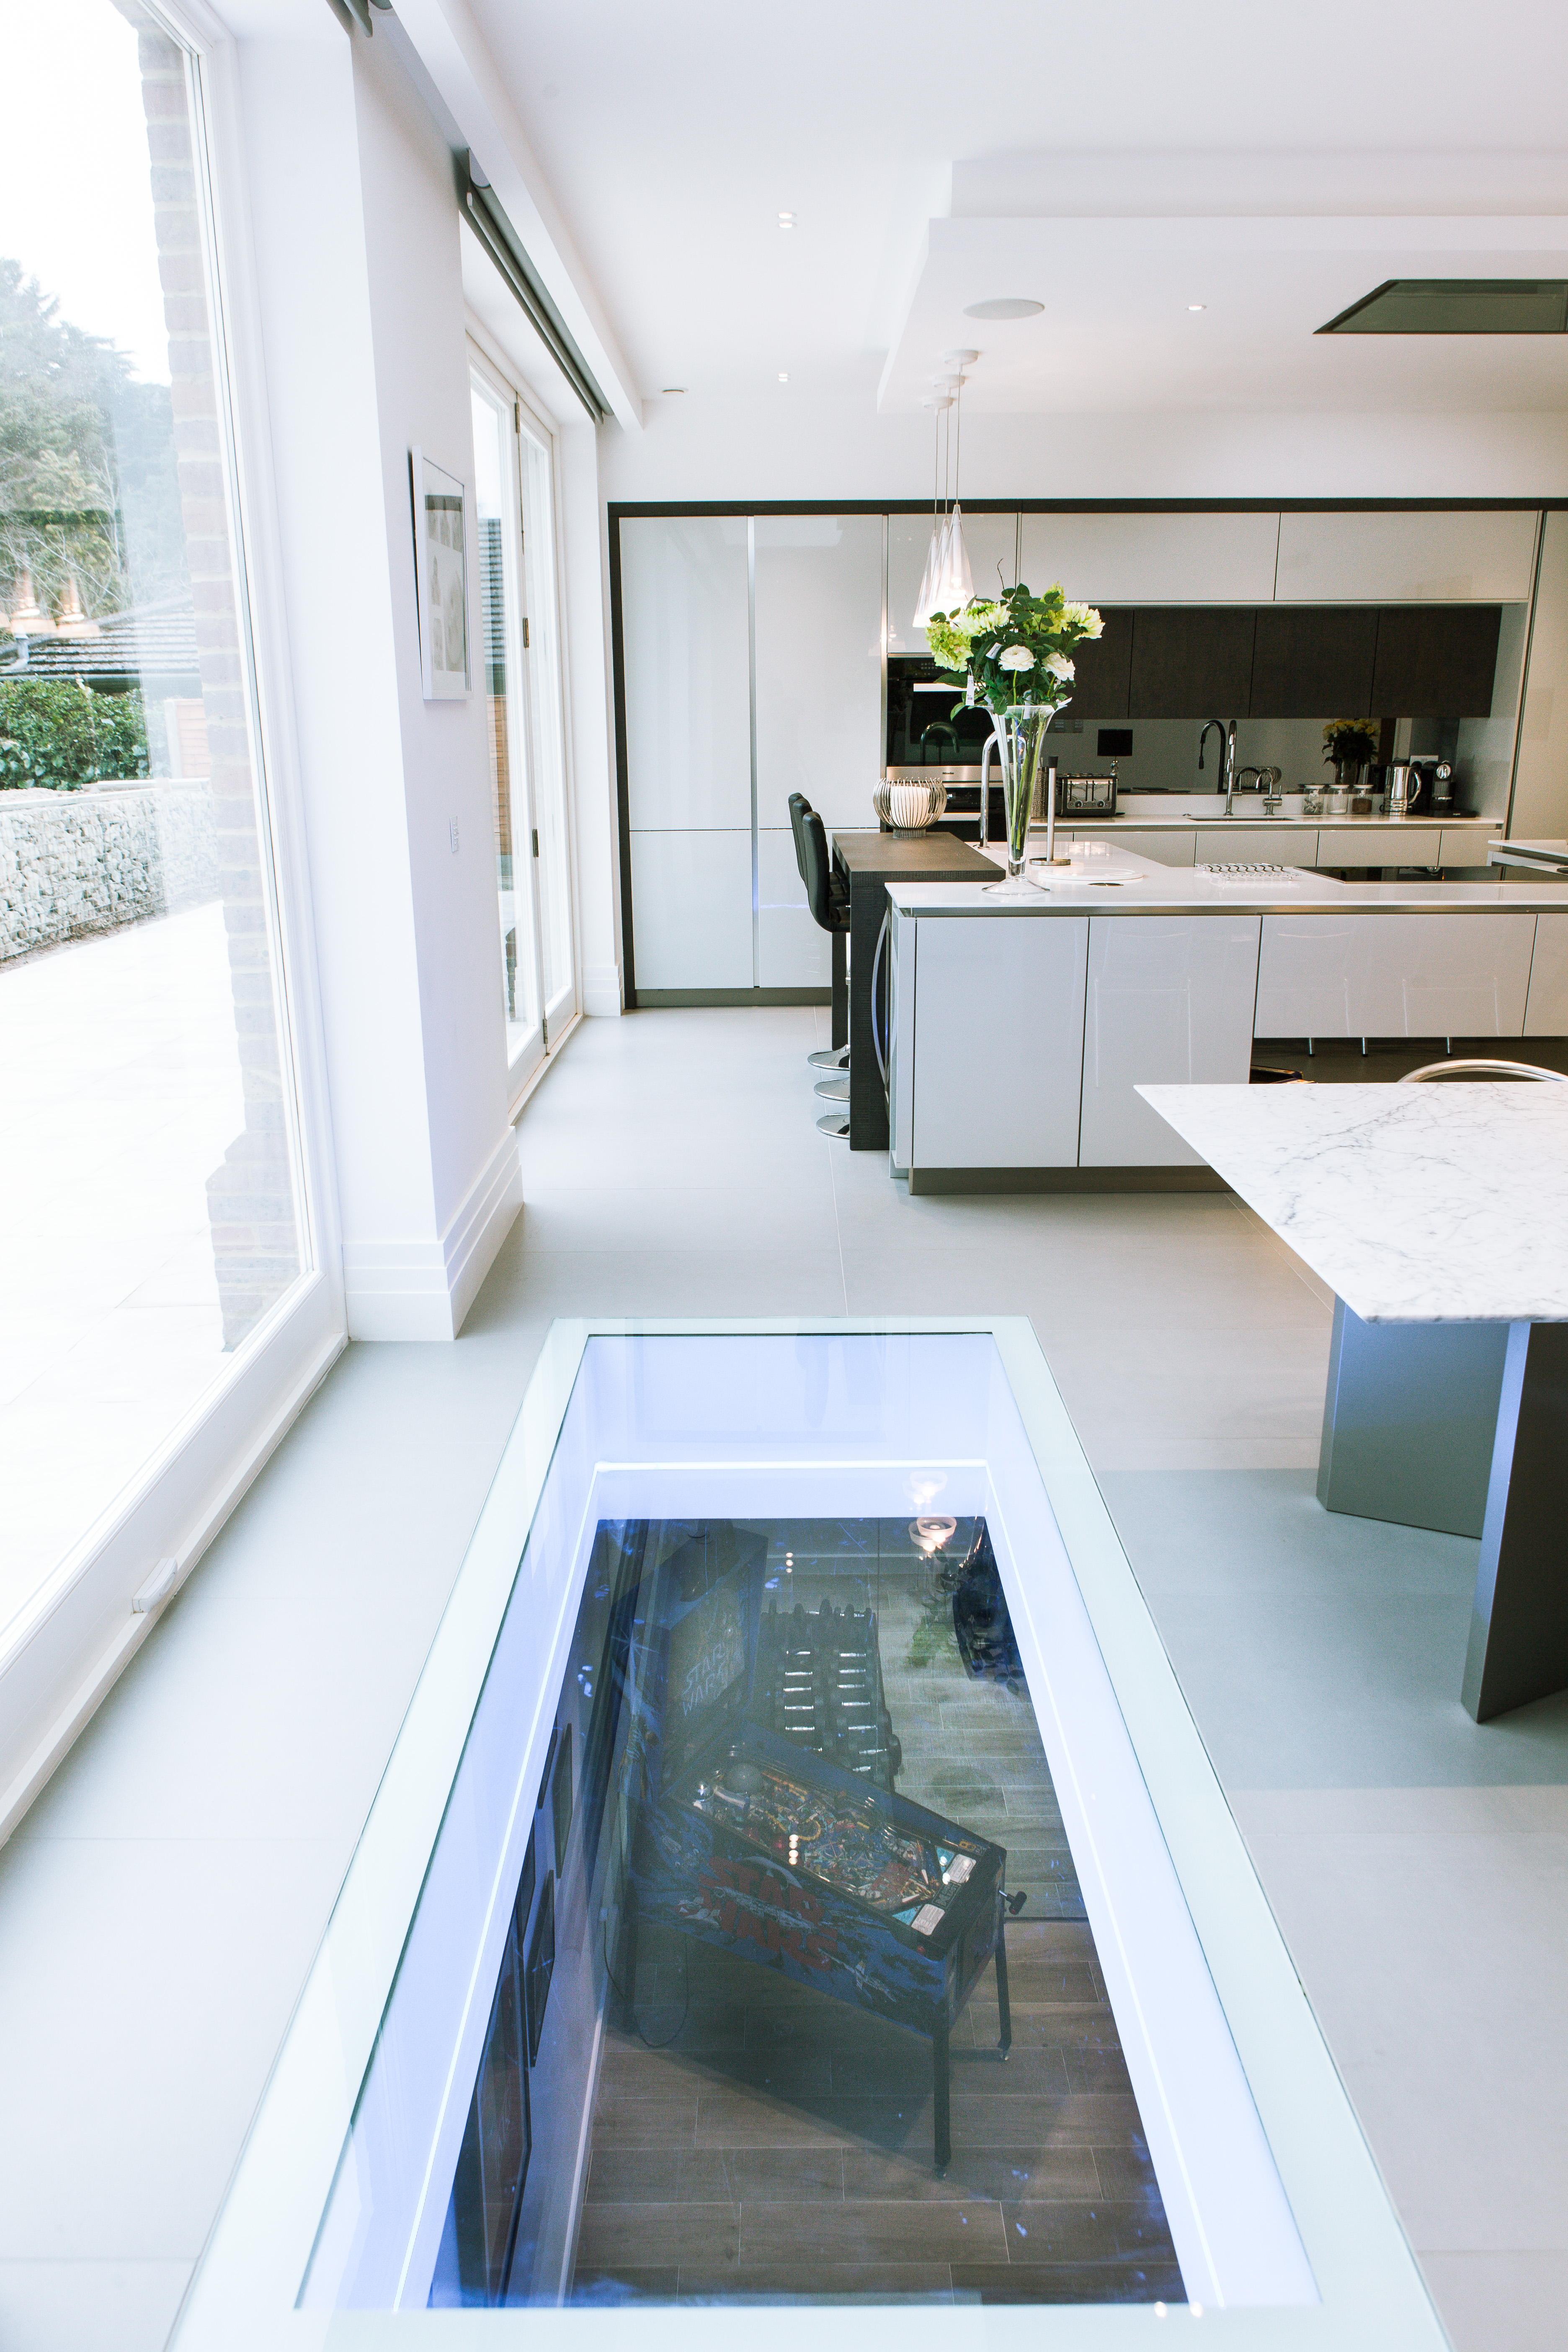 Oblong glass floor with white edge trim in modern kitchen